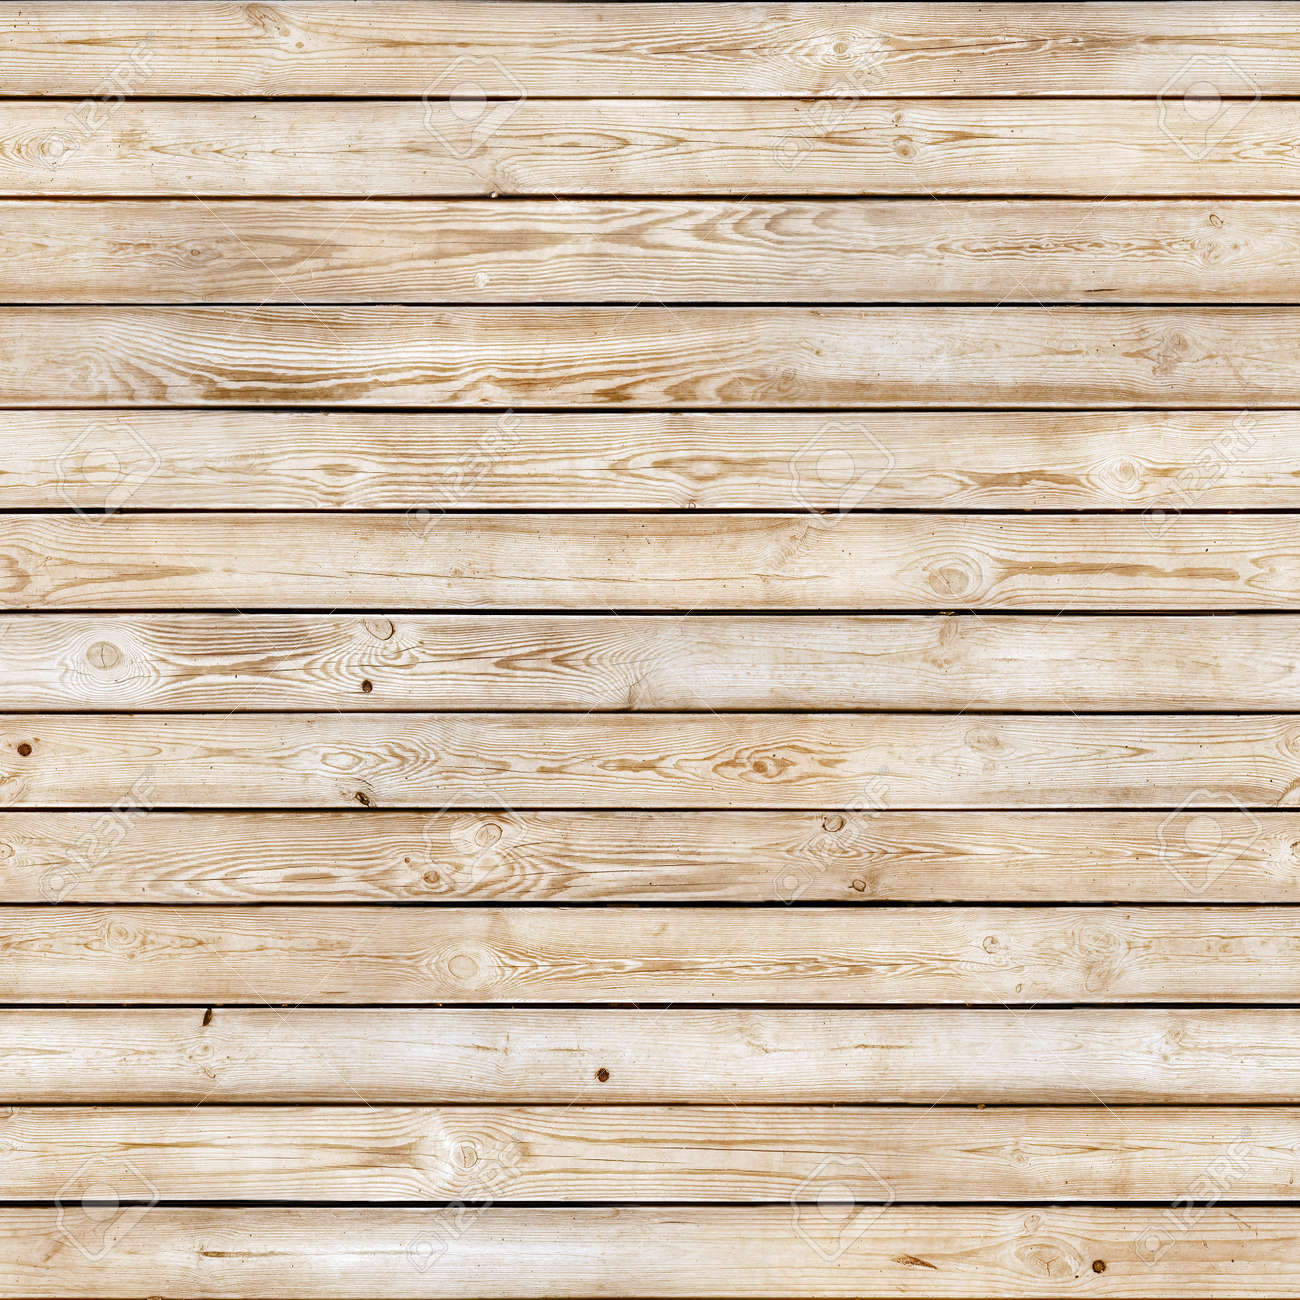 Wood seamless texture. Natural background Stock Photo - 30392892